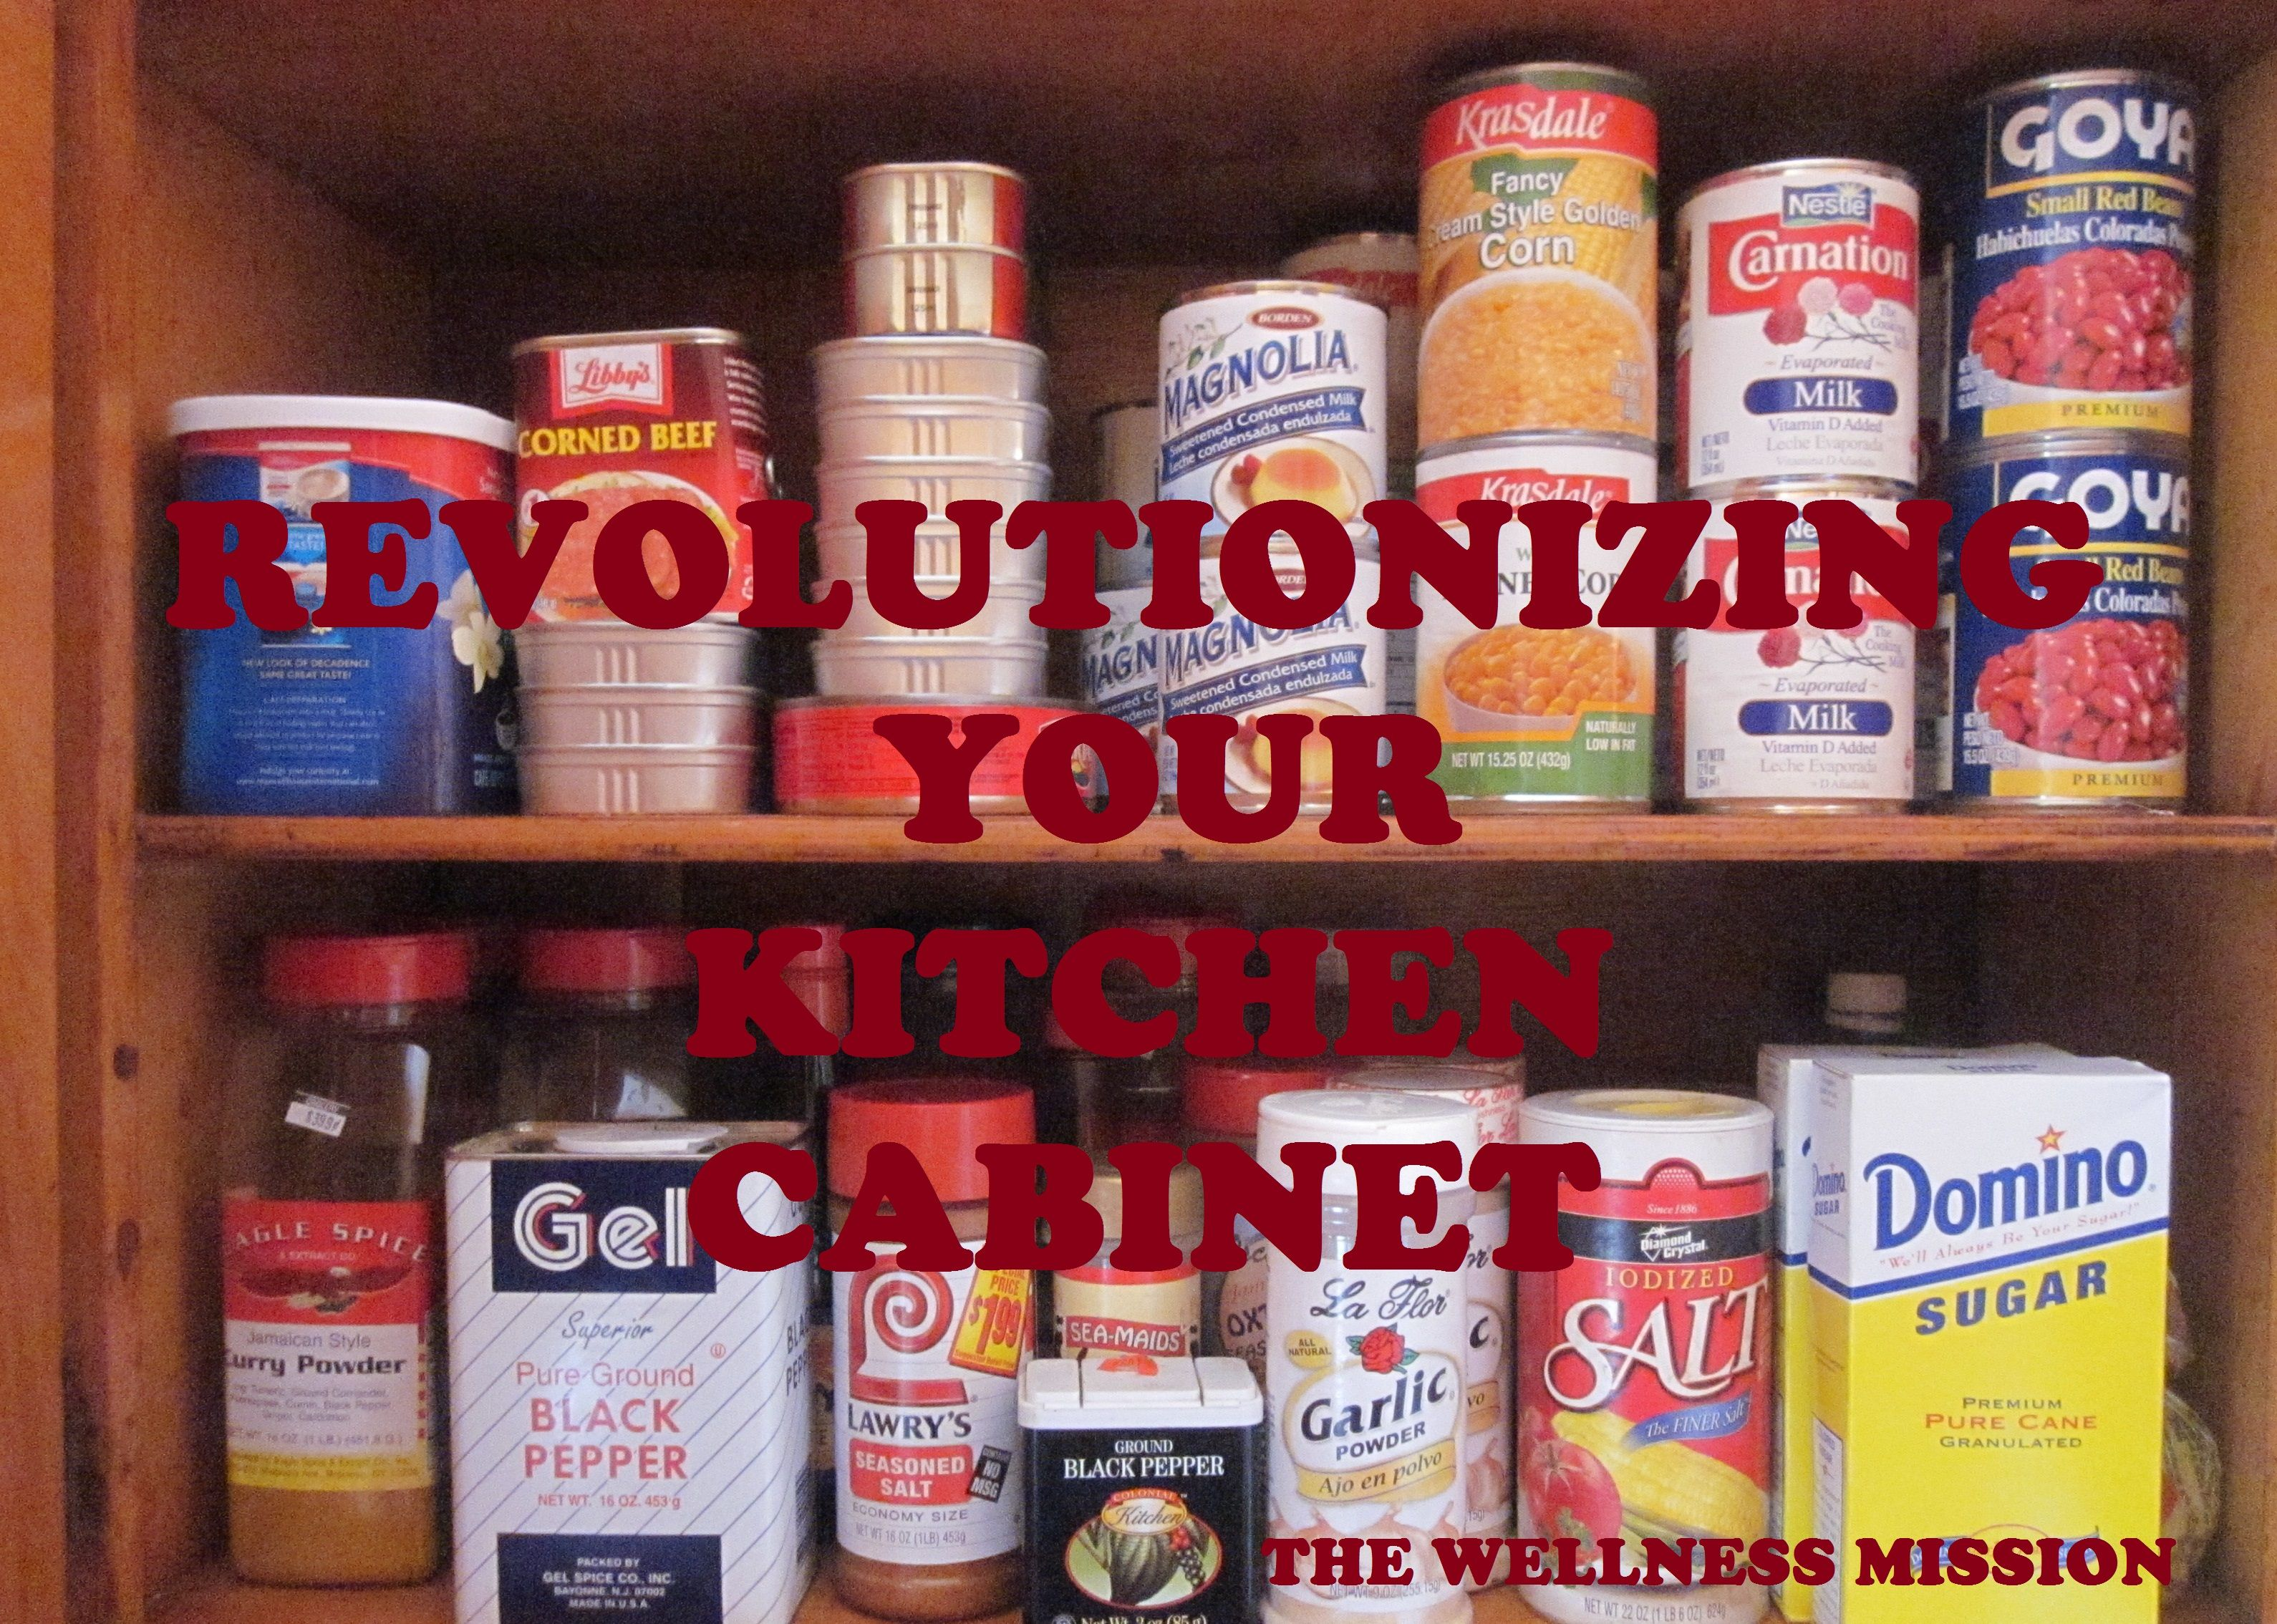 HAVING TROUBLE STOCKING YOUR CABINETS WITH HEALTHY FOODS. Then set up a supermarket tour and then set up a kitchen makeover with me. This Summer I will be introducing some really great healing information to all those in need of making a change for the better. I will help you to re-learn how to shop for foods, understand food labels and supermarket ploys, while saving money on a budget then we'll go over how to organize and supply your cabinets correctly. www.windowsofwellness.com…